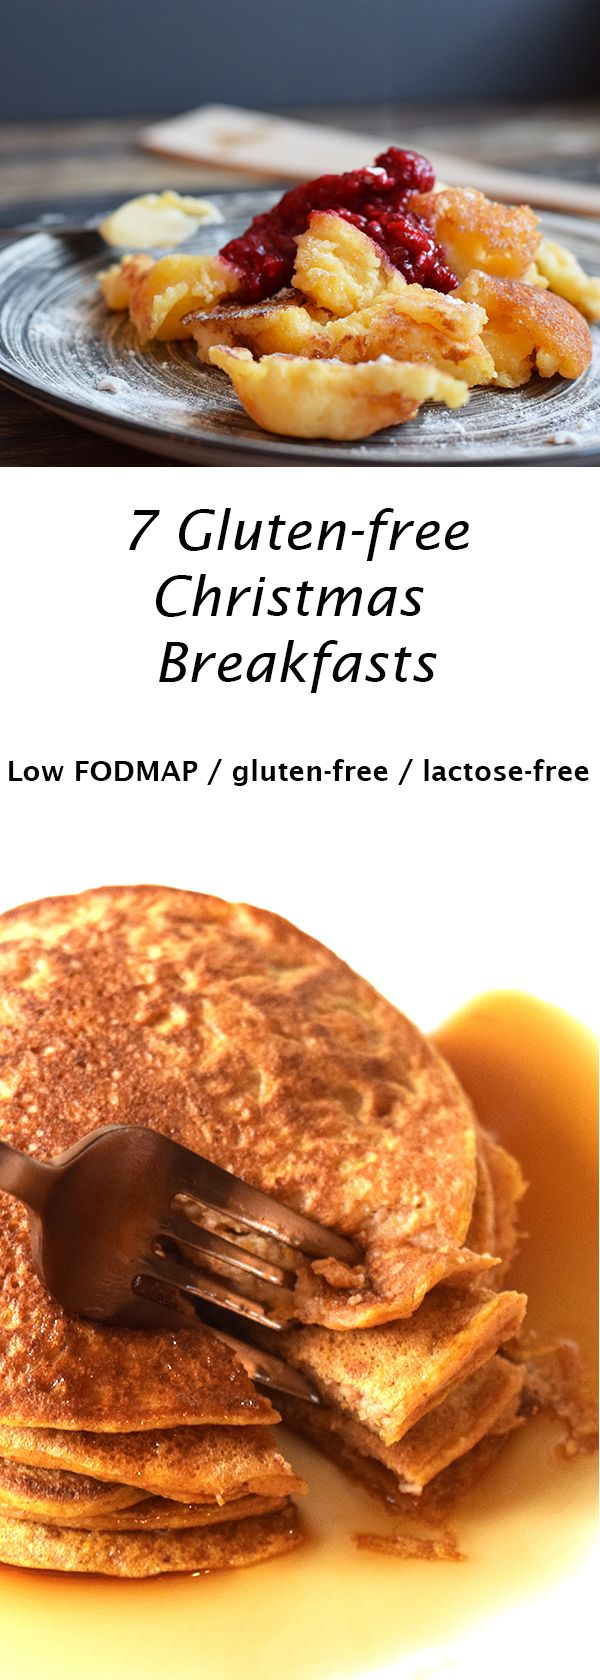 7 delicious gluten-free Christmas breakfasts. Low FODMAP, gluten-free and lactose-free.